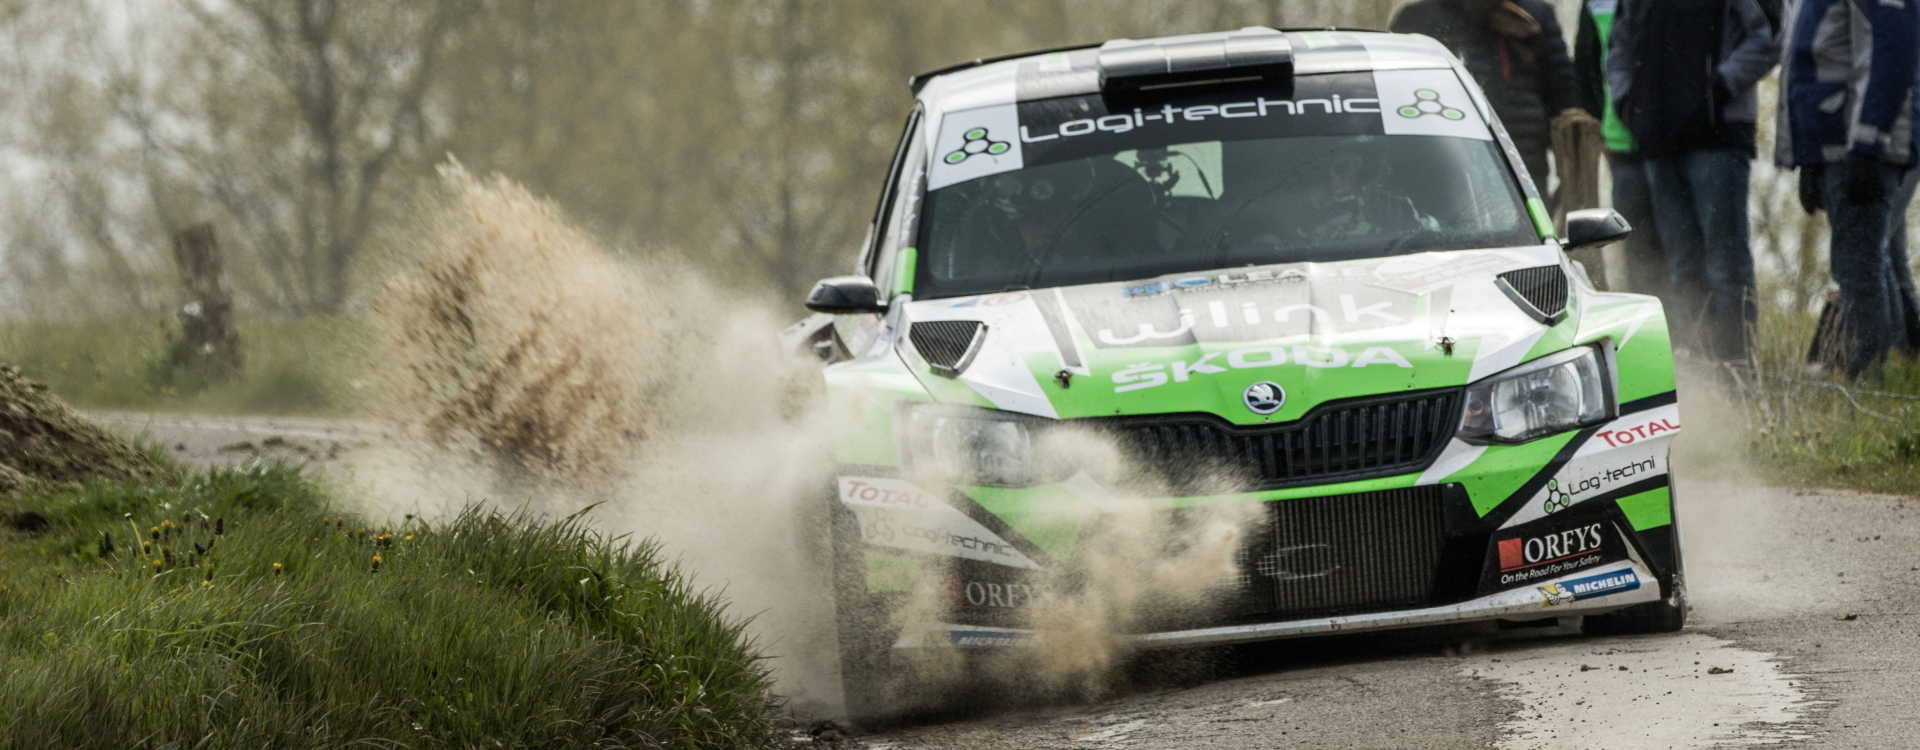 PHOTO: Fourth win in row for Loix at the Rallye de Wallonie